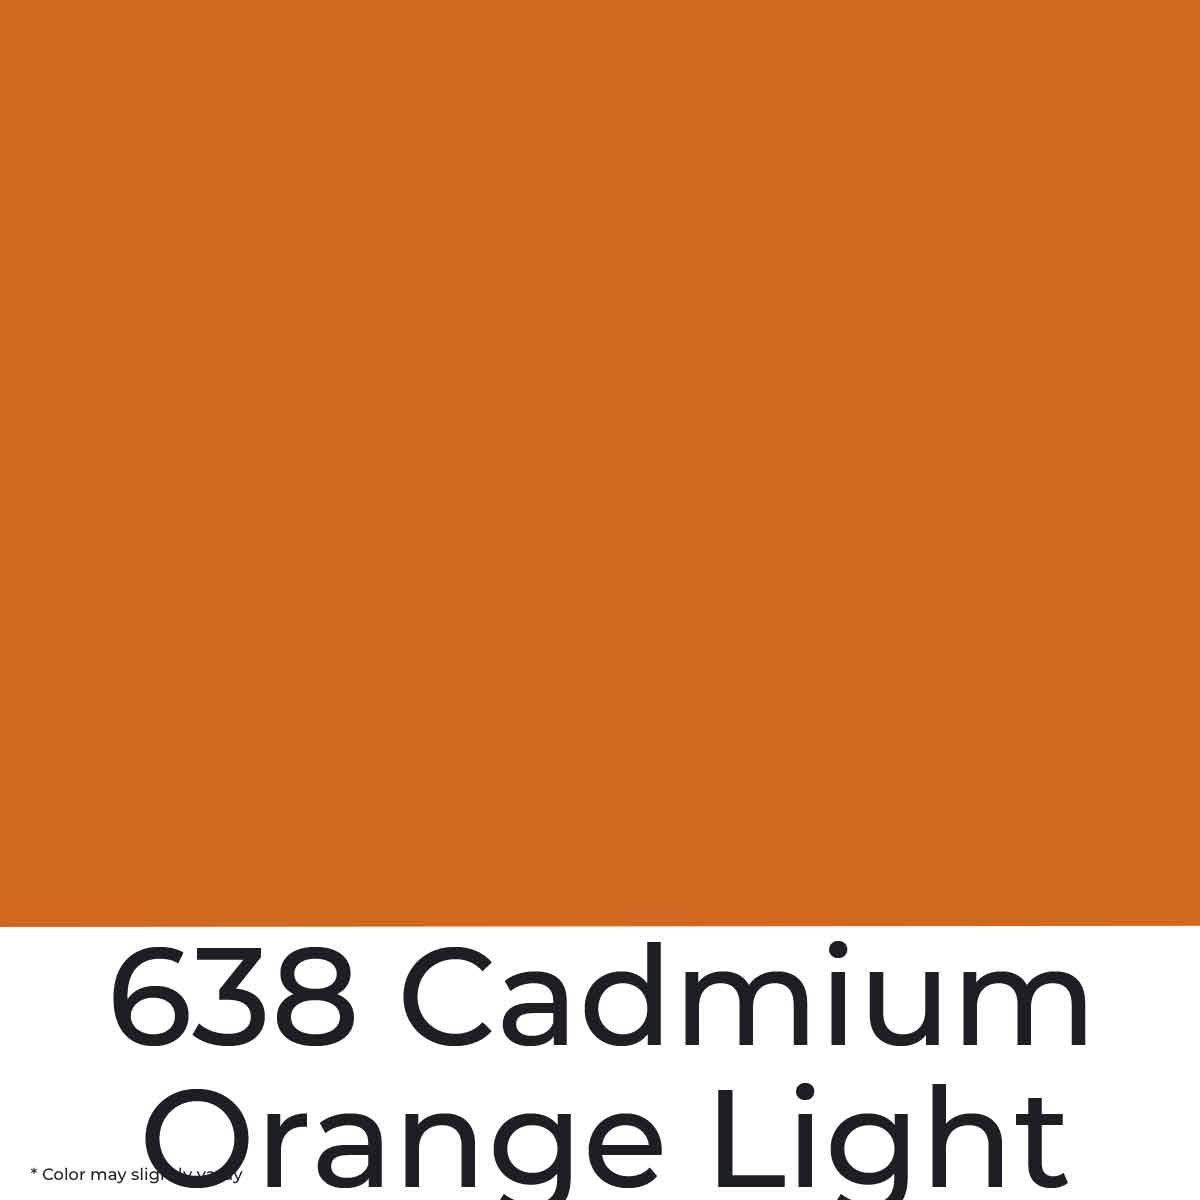 Daler Rowney Acrylic Paint - Cadmium Orange Light 638 from najmaonline.com Abu Dhabi, Dubai -uaE